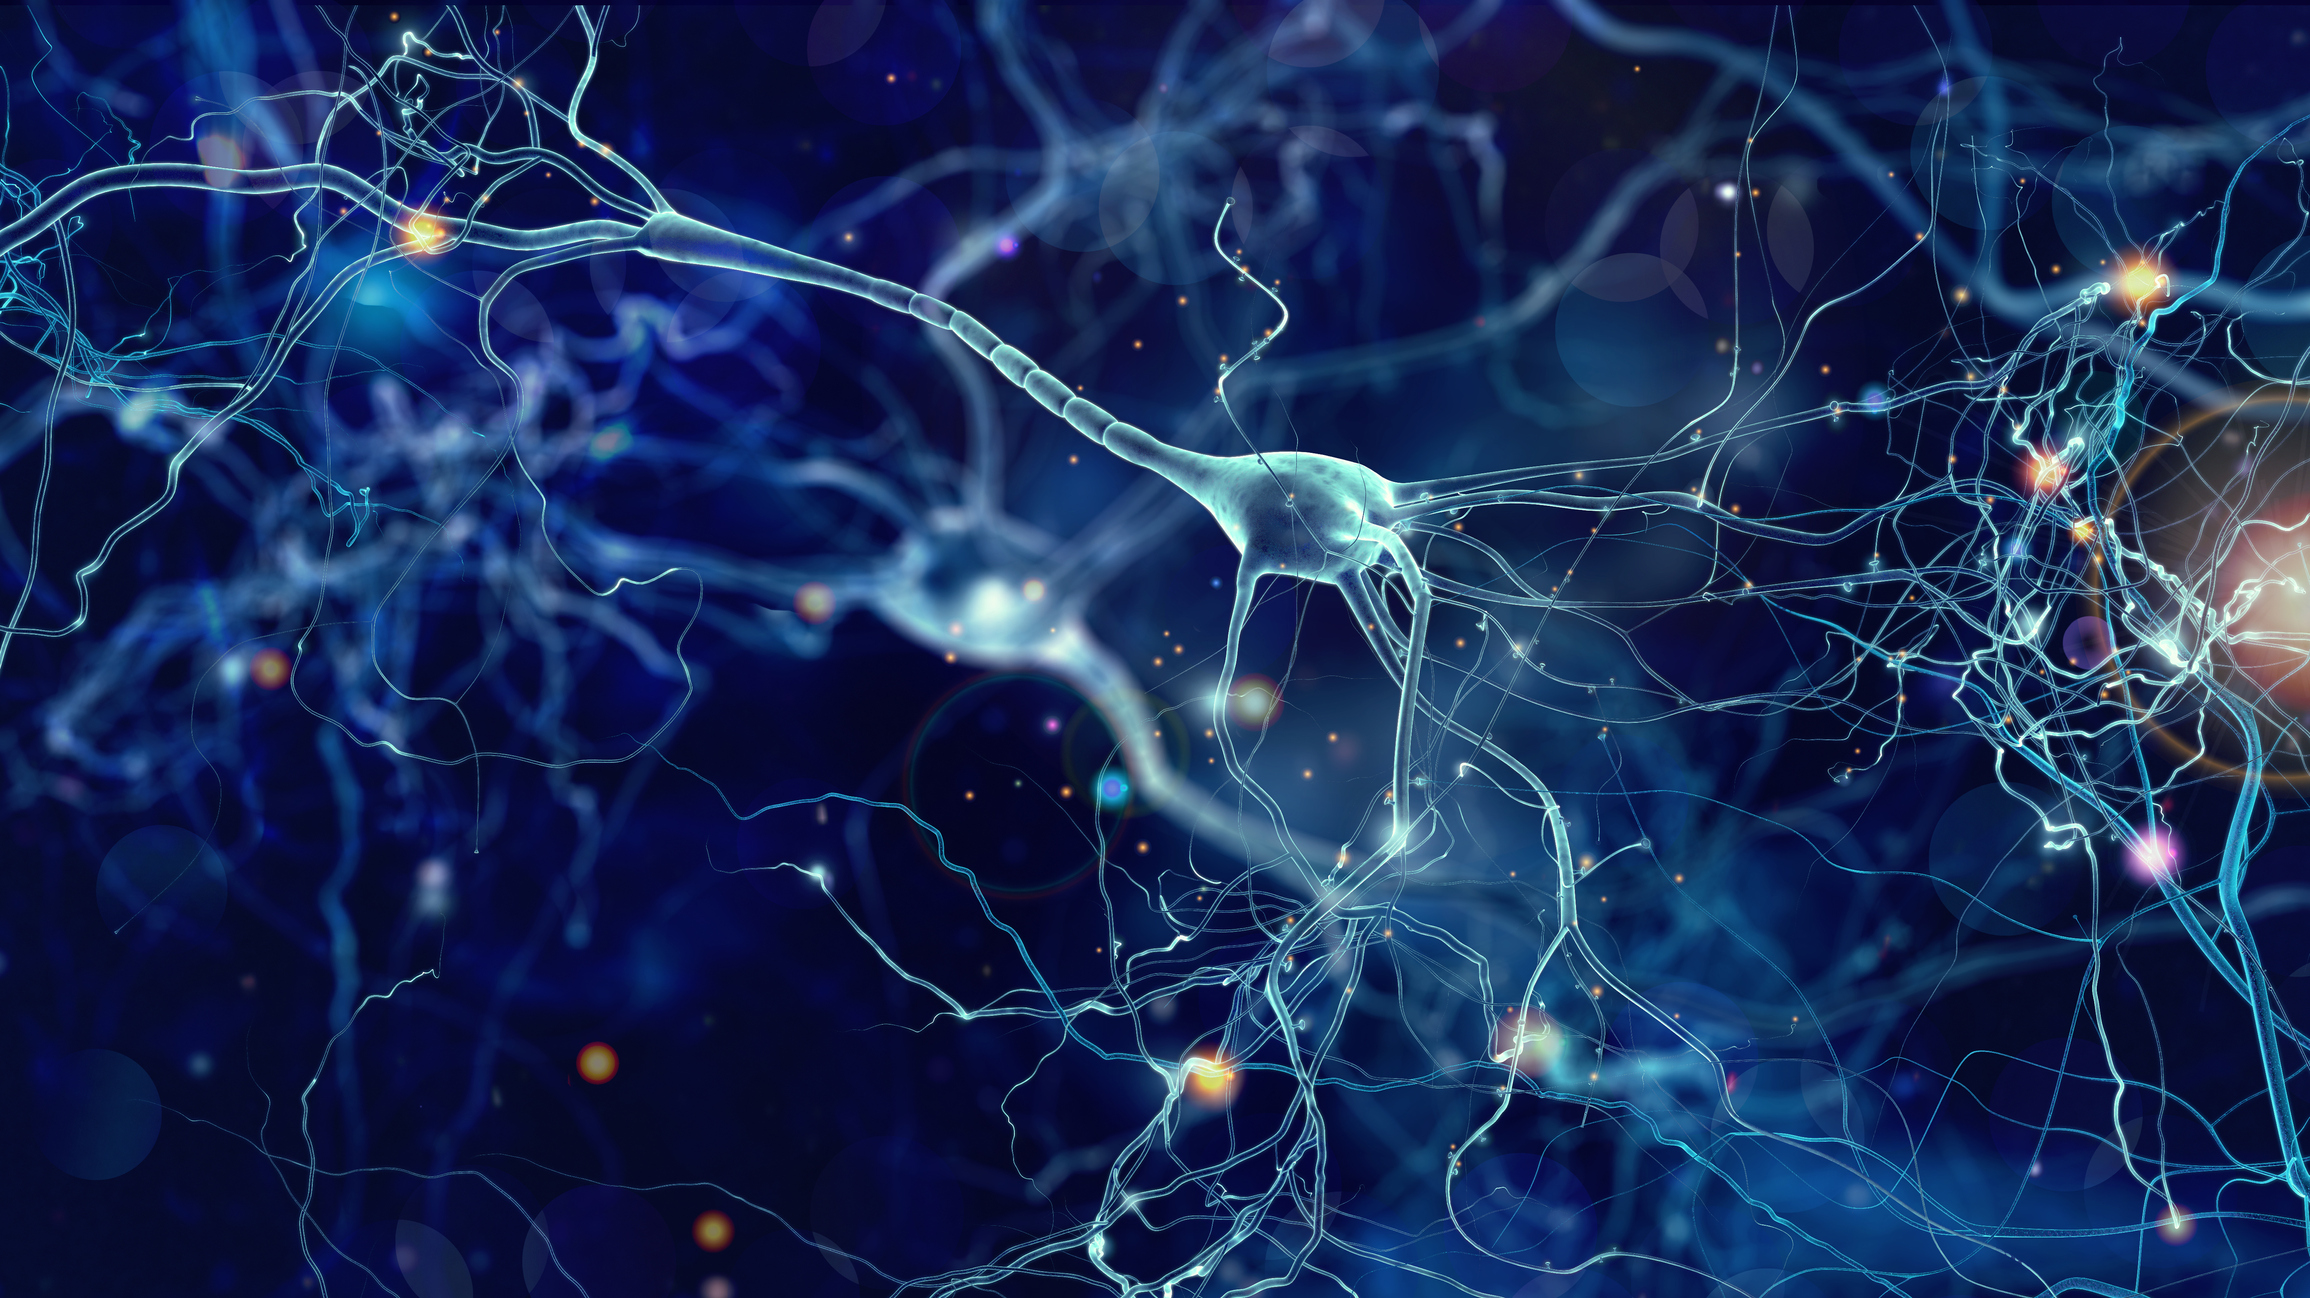 Conceptual illustration of neuron cells in the brain. Image credit: iStock